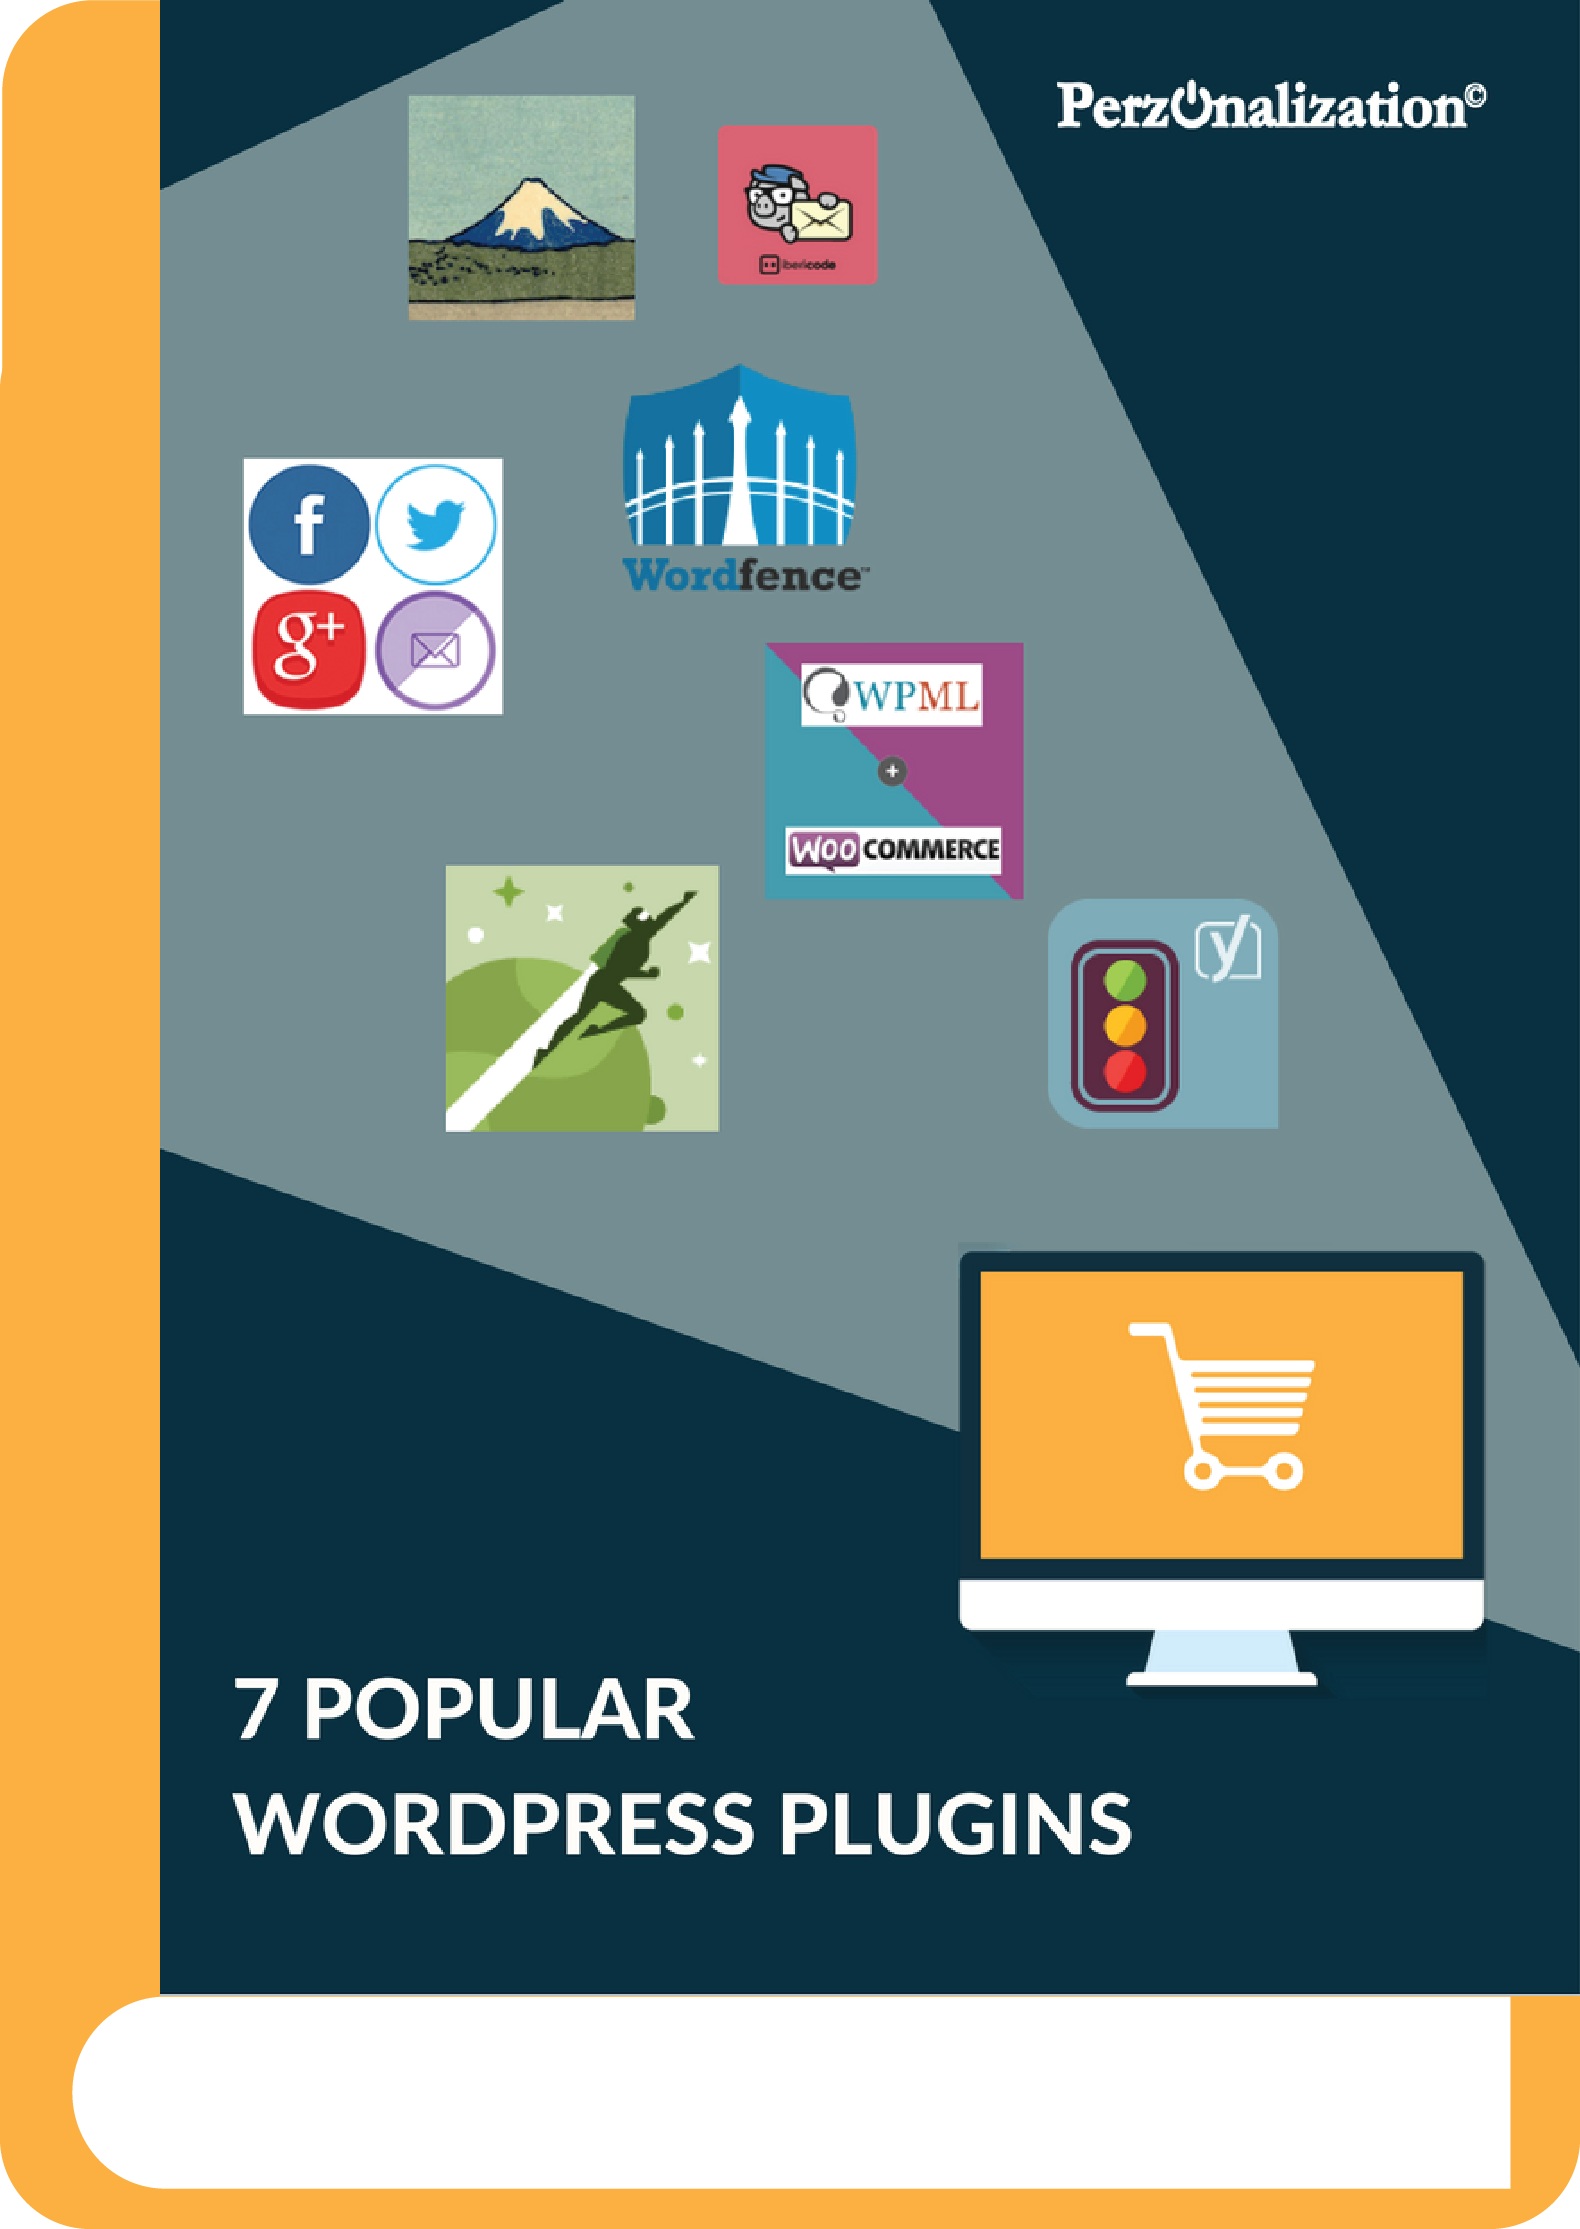 Top 7 Popular WordPress Plugins for Successful Blogging Reviews Contact Form 7, Yoast SEO, Jetpack, Wordfence Security, Mailchimp, Social Icons and WPML.